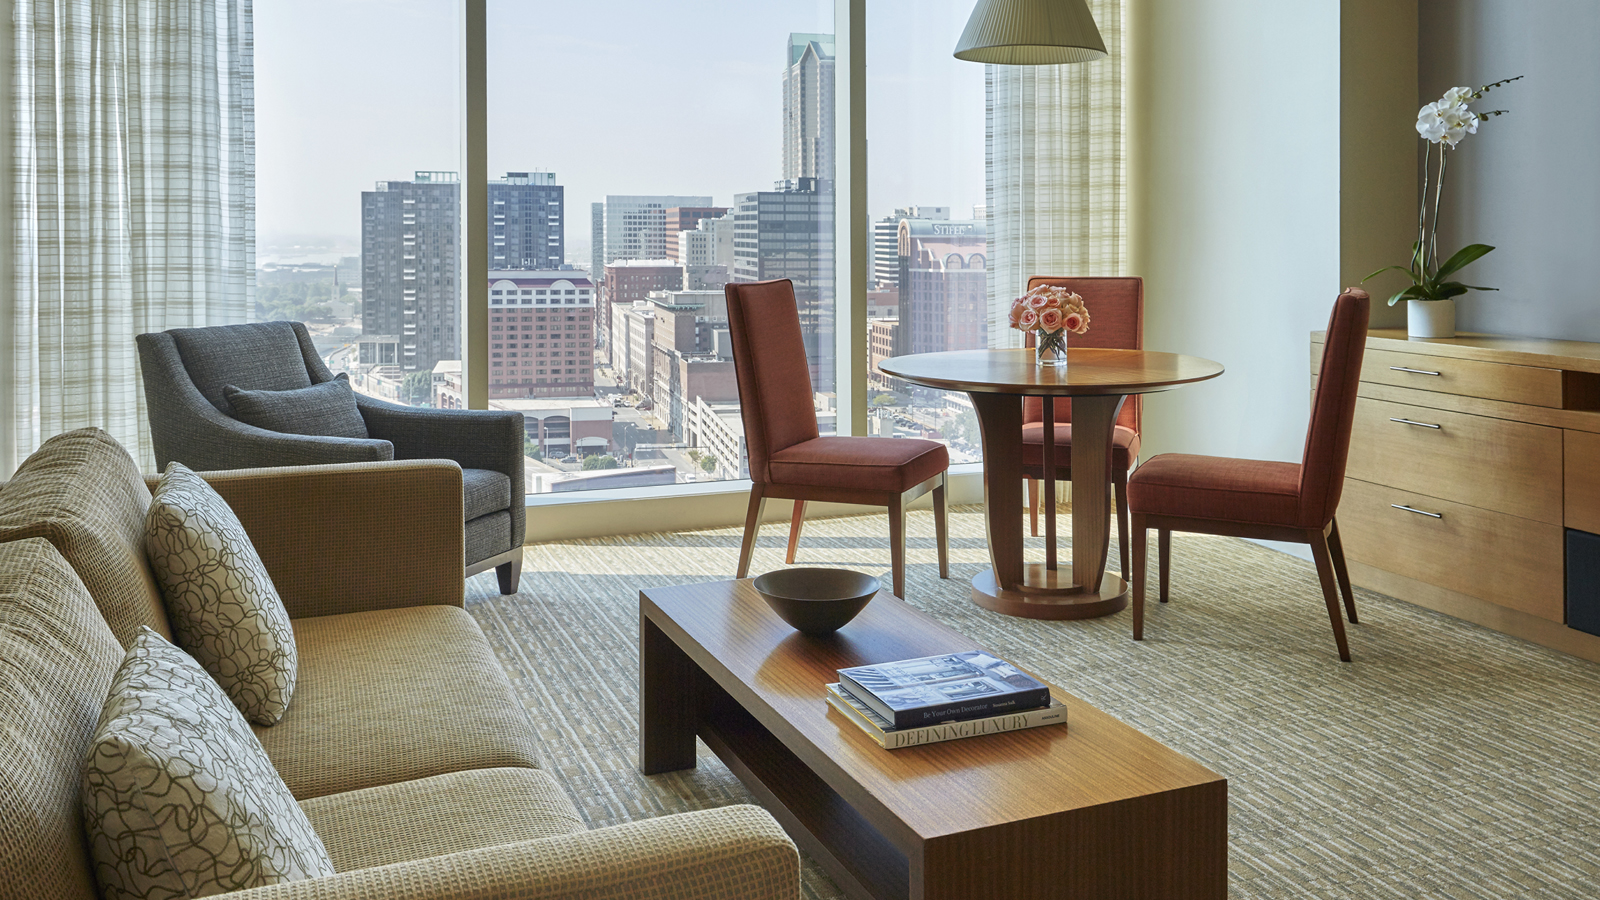 Stay Longer - Third Night Free Offer at Four Seasons Hotel St. Louis